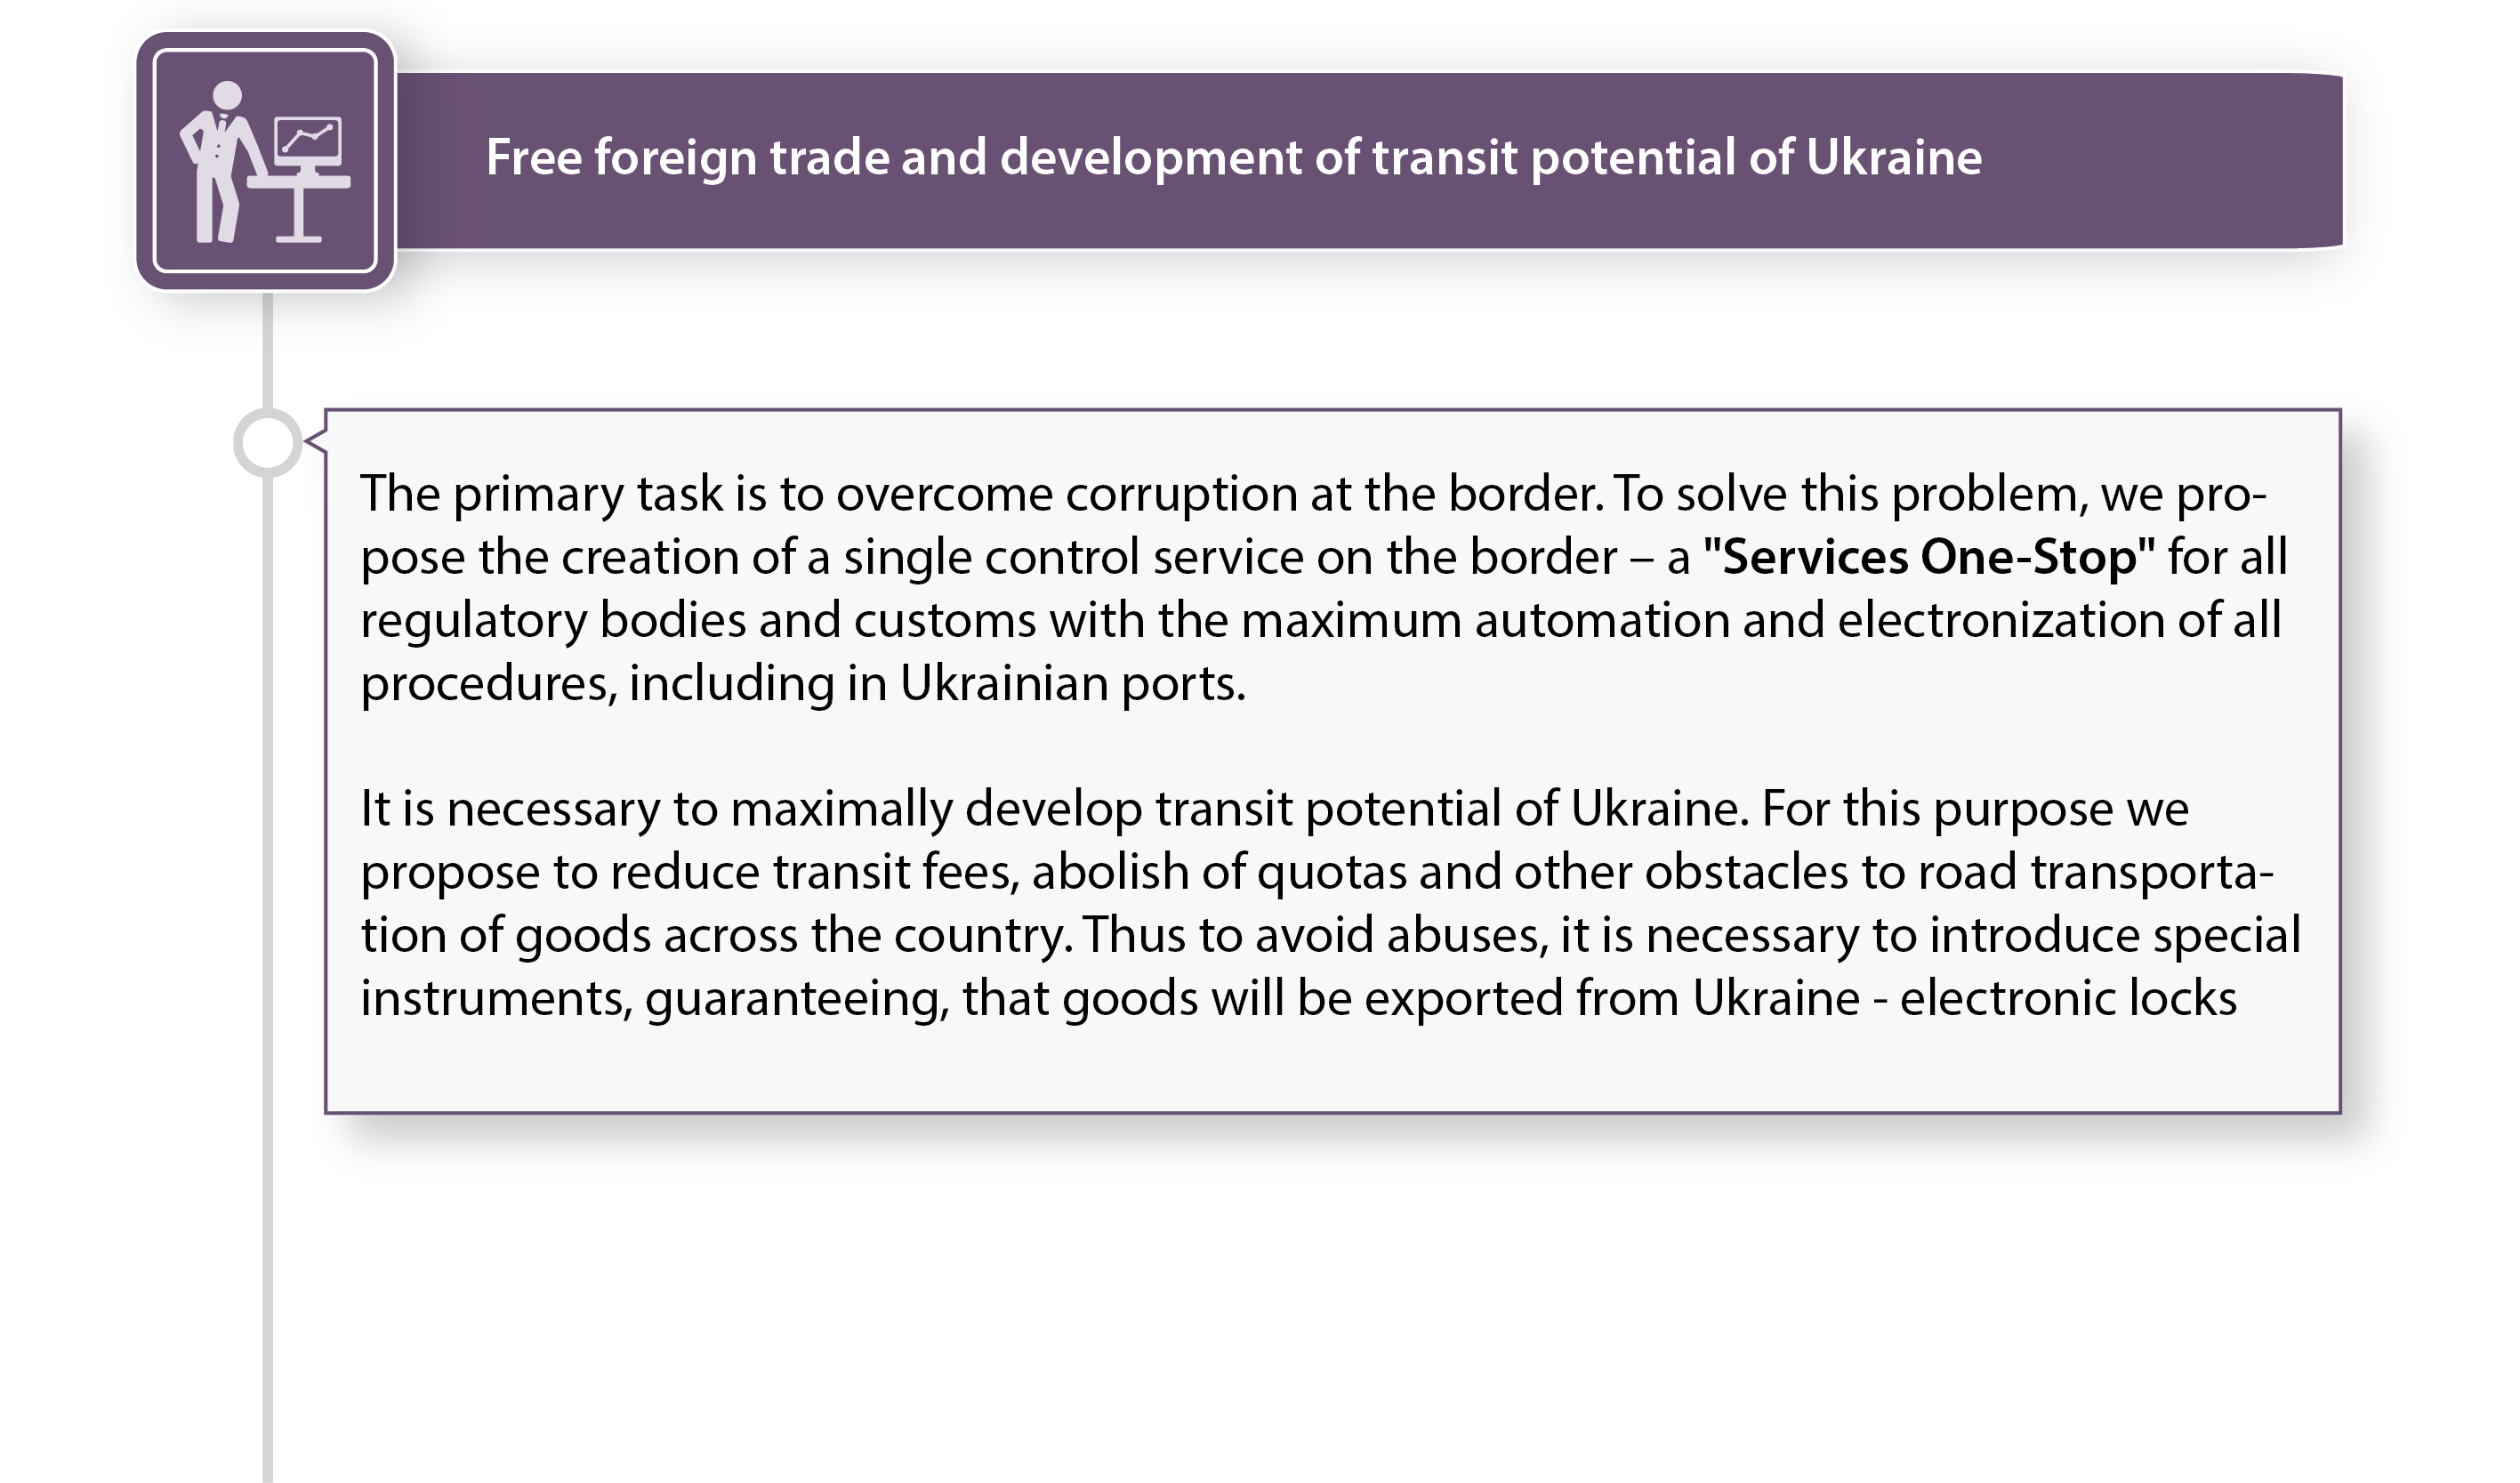 Free foreign trade and development of transit potential of Ukraine